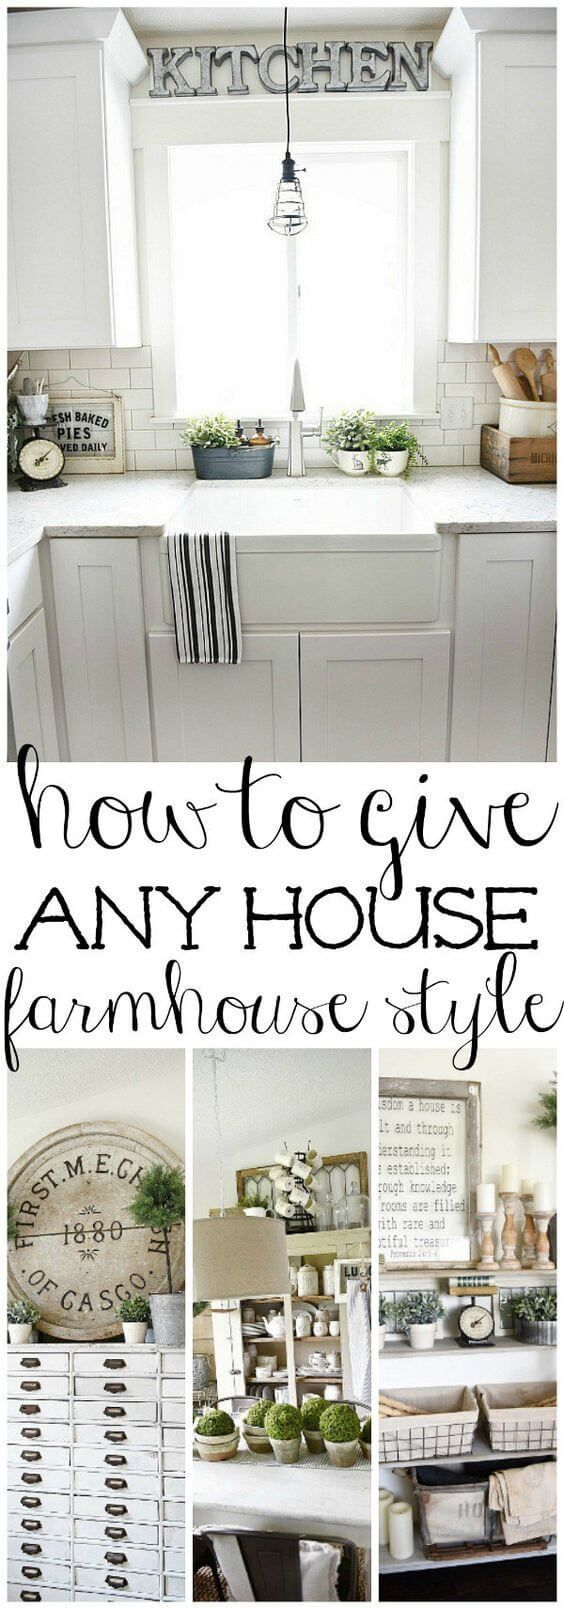 291653081 Urob si sám · How to Give Anything Farmhouse Style by Liz Marie | DIY  Farmhouse Projects for Fixer Upper